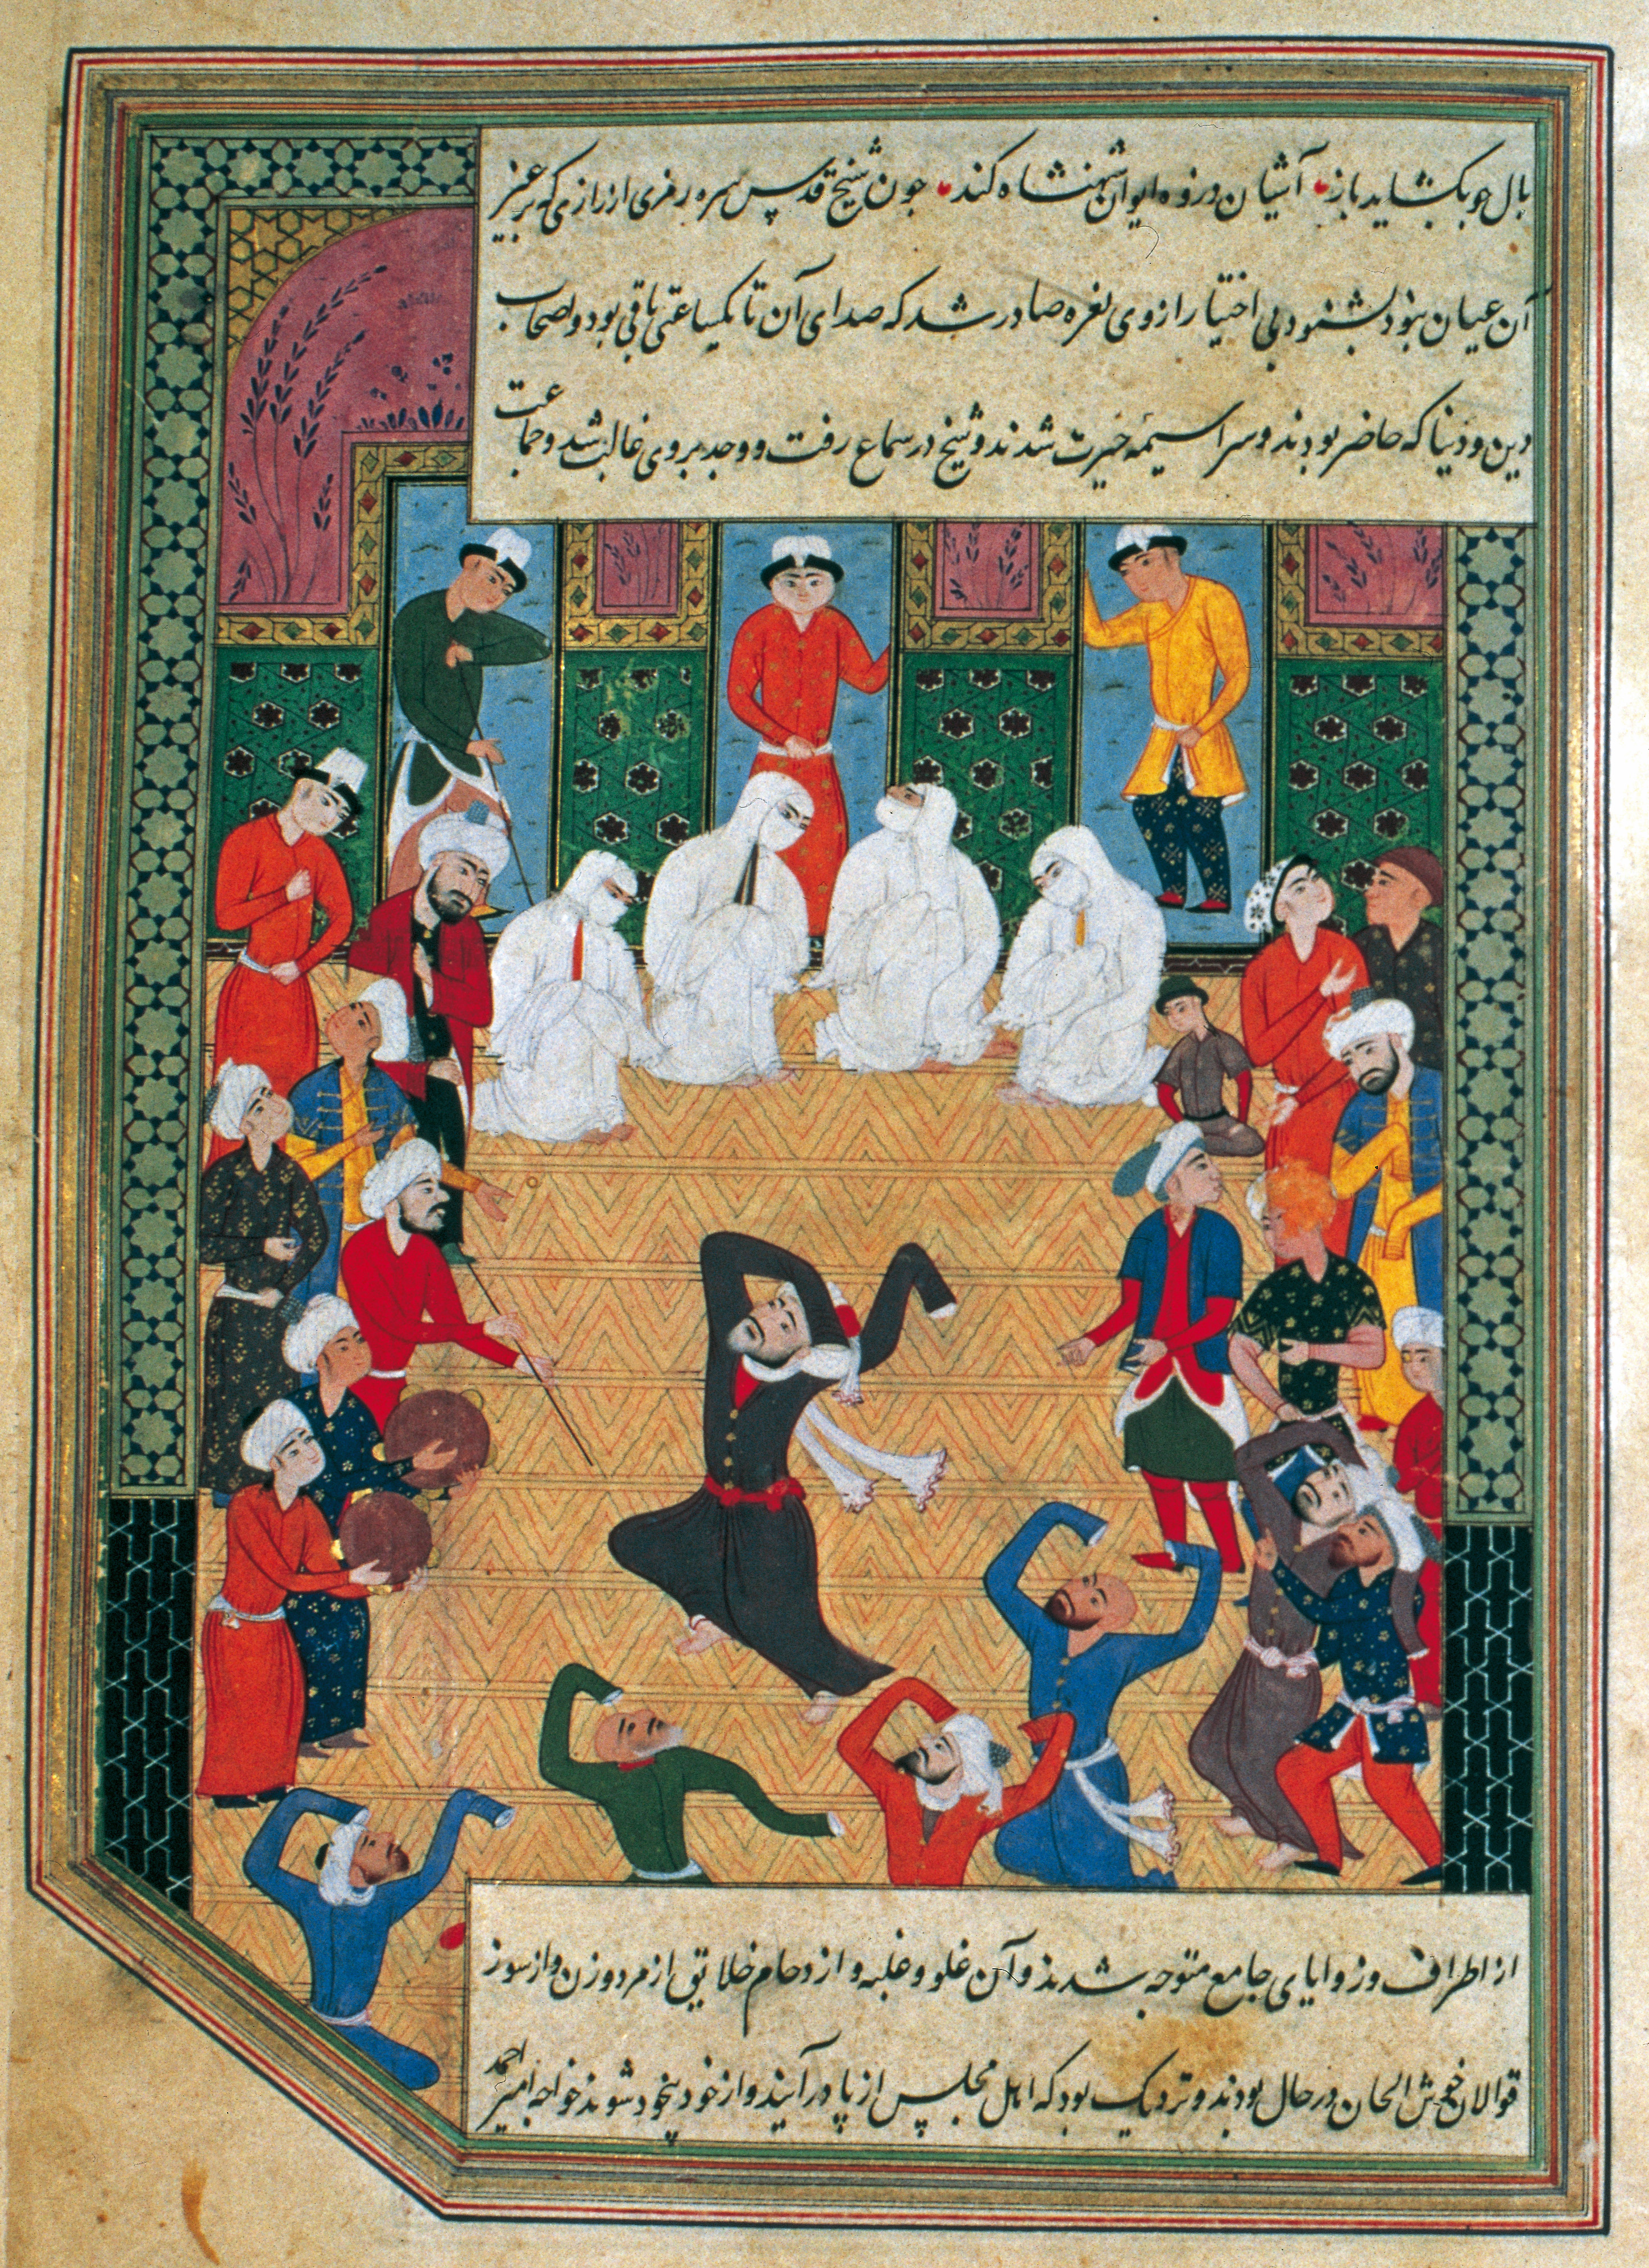 A watercolour painting in the Shirazi style (c. 1582) depicting Shaykh Safi dancing in a sama. It is notable that four women and a child are part of the circle, suggesting their initiation into the practices of the order. Photo: Aga Khan Trust for Culture / AKM00264